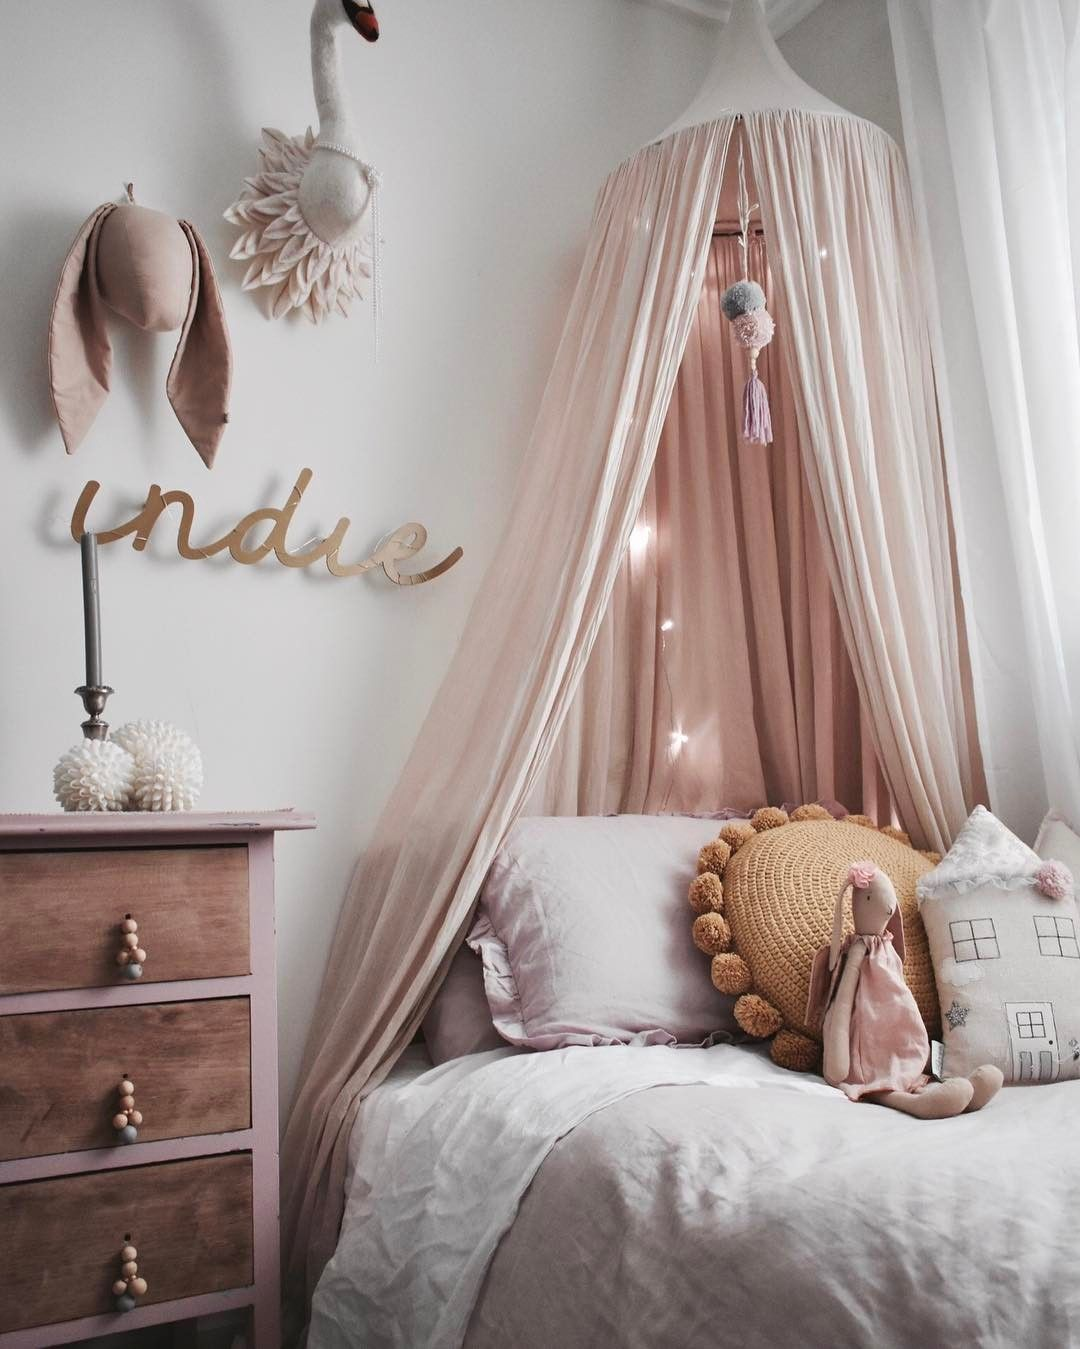 Gorgeous styling! | Shawn | Décoration chambre fille ...